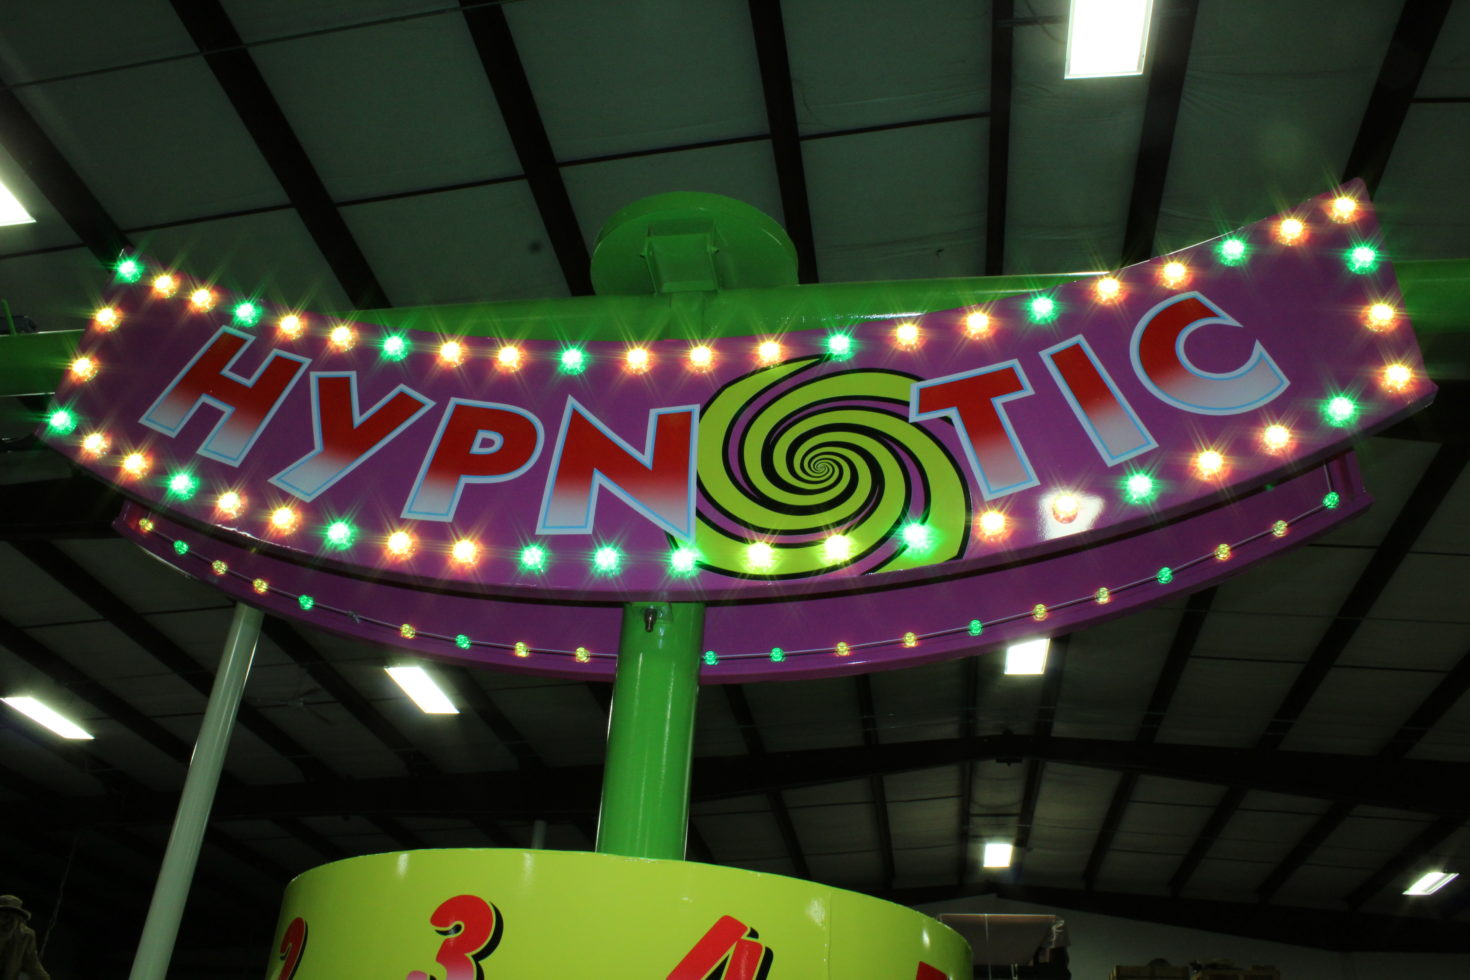 Hypnotic Marque on ride